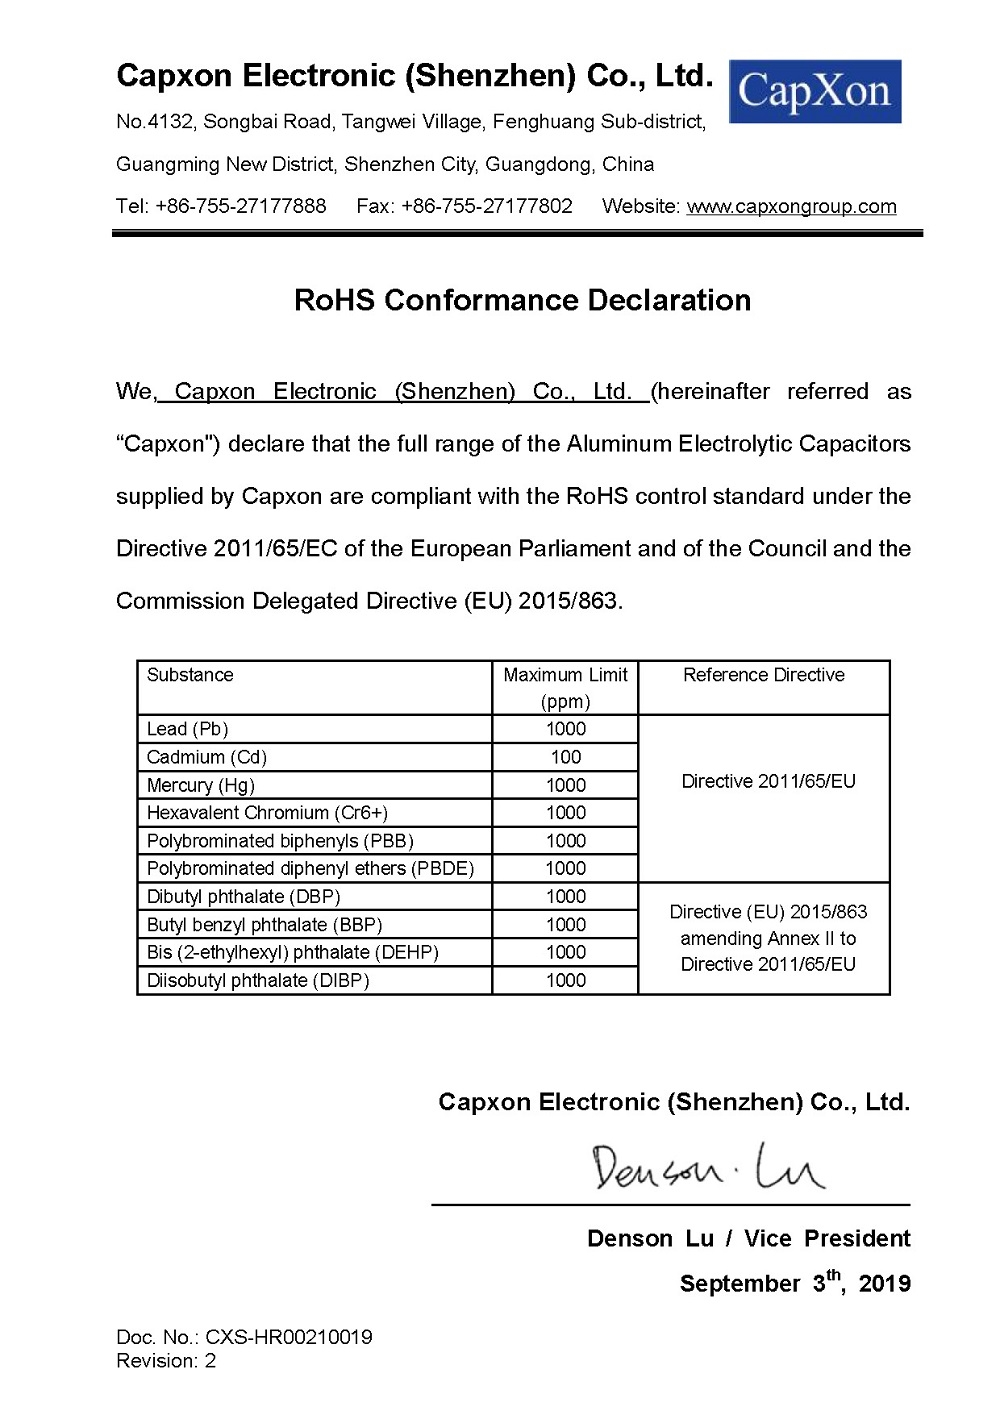 RoHS Conformance Declaration